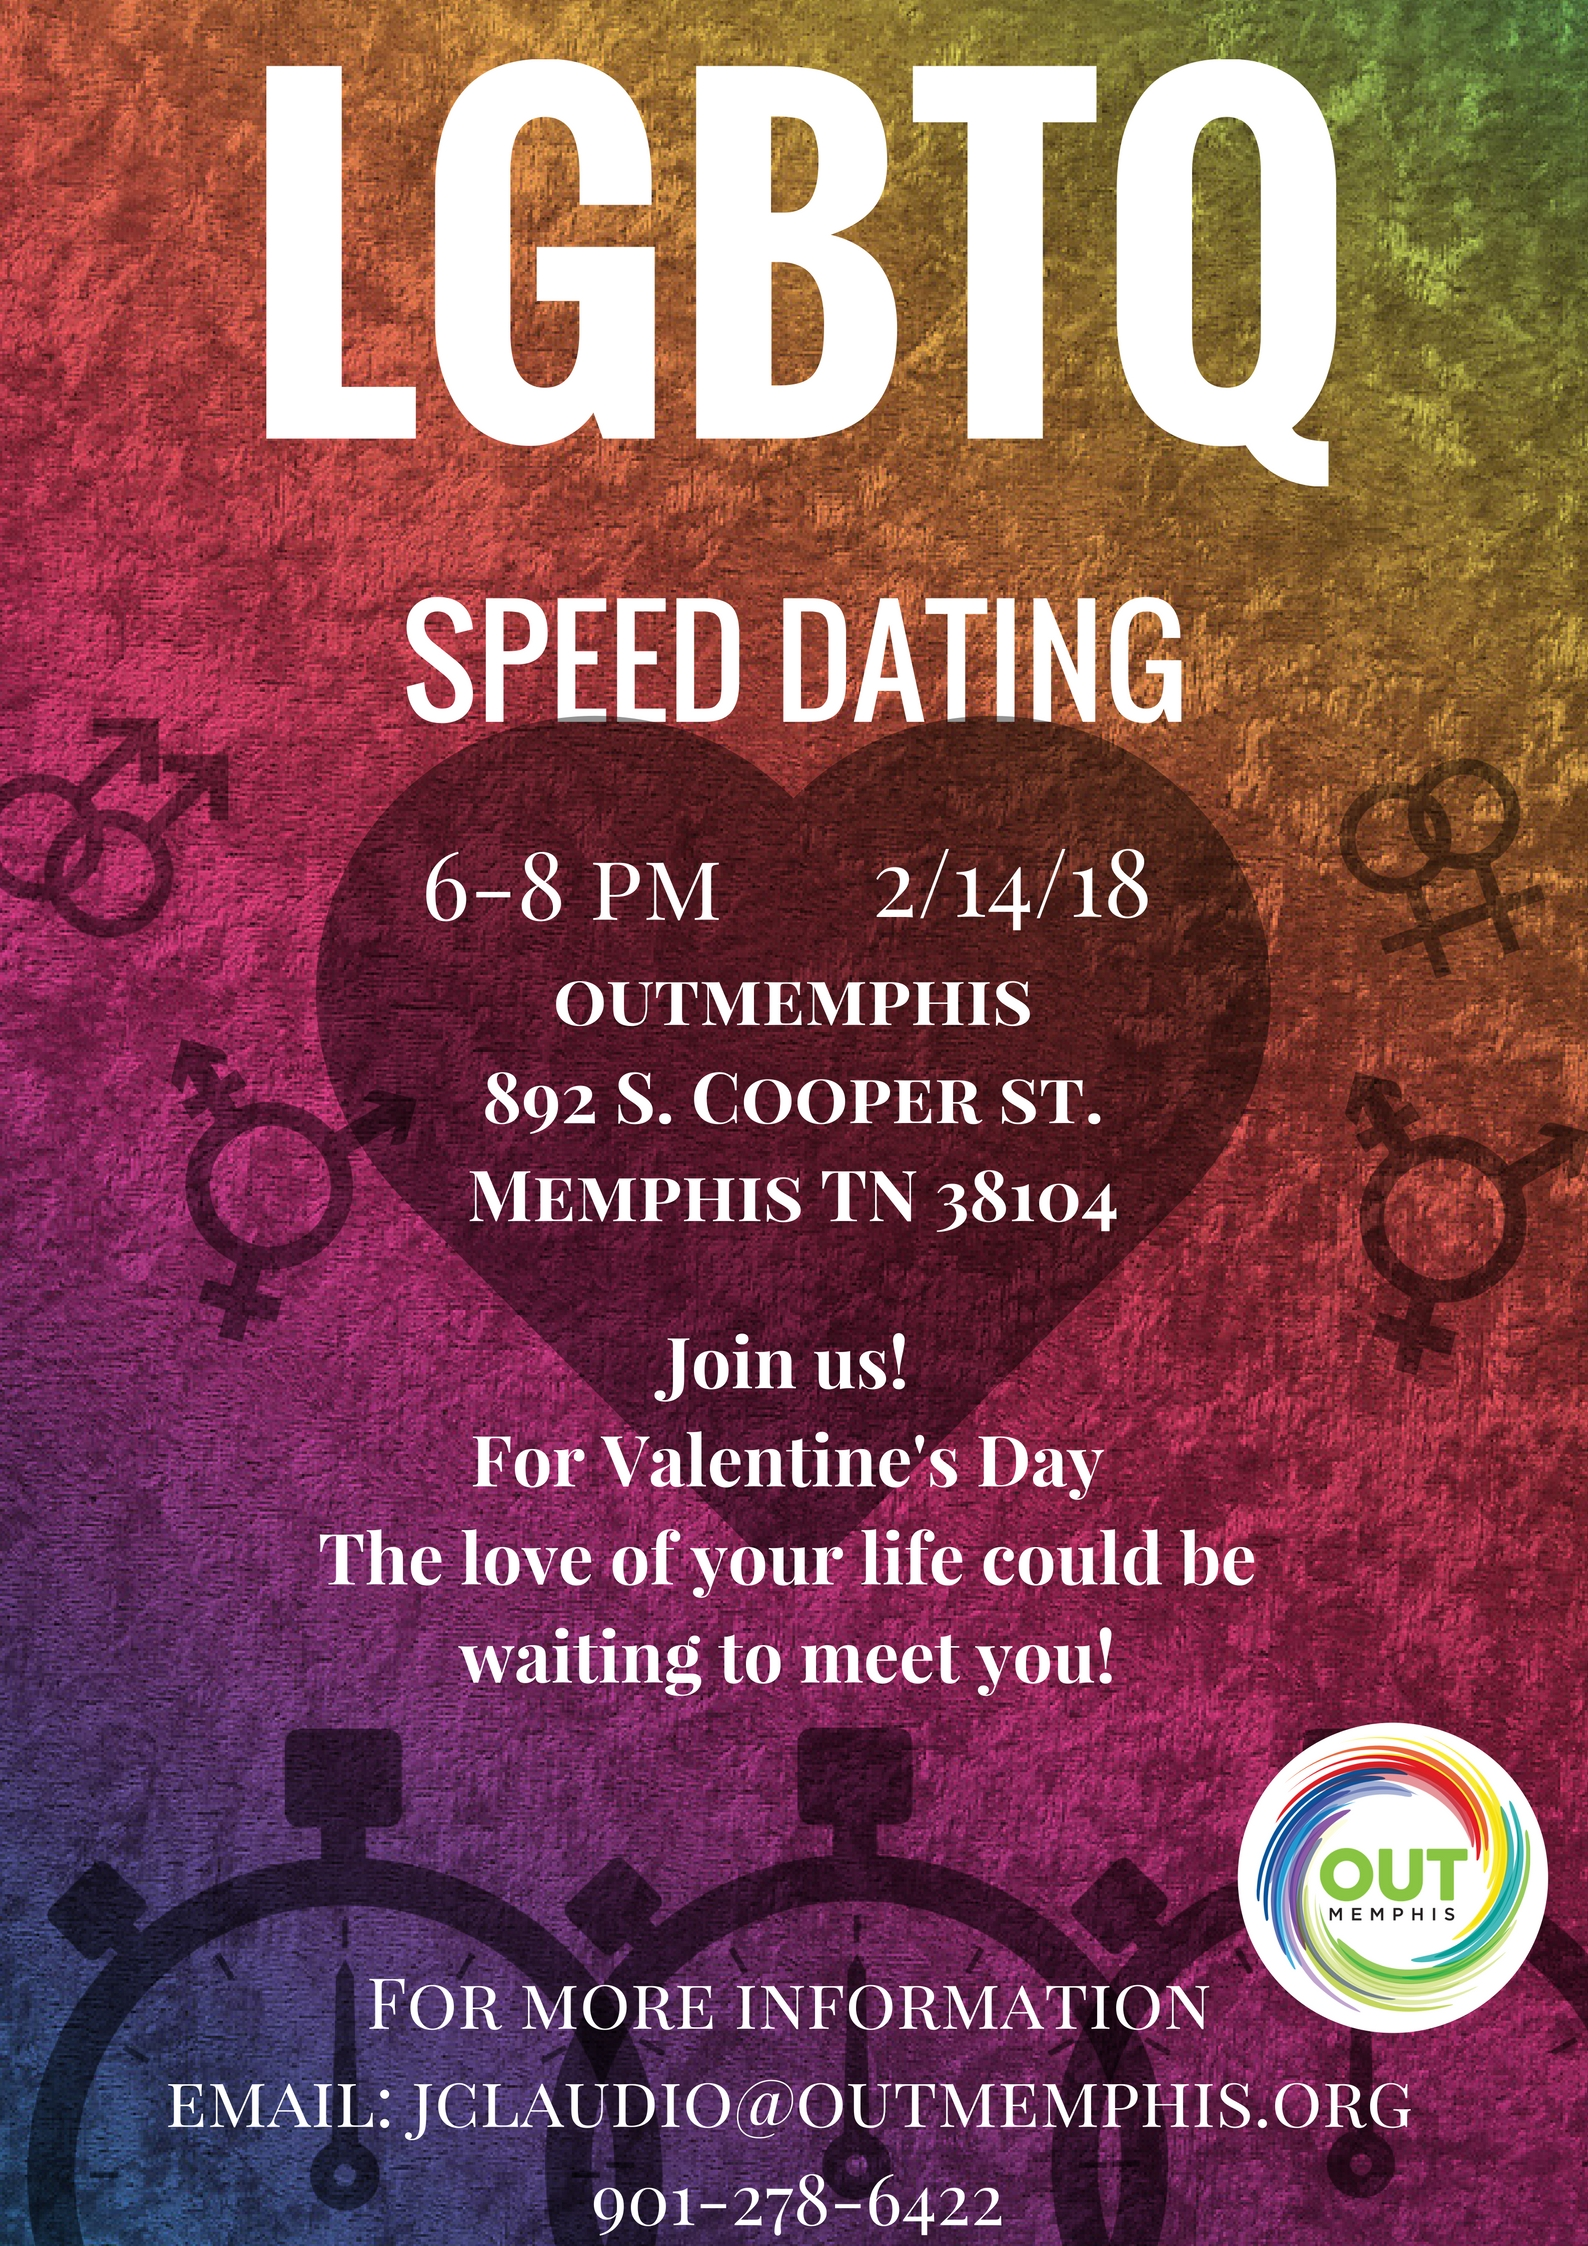 Lgbtq speed dating austin